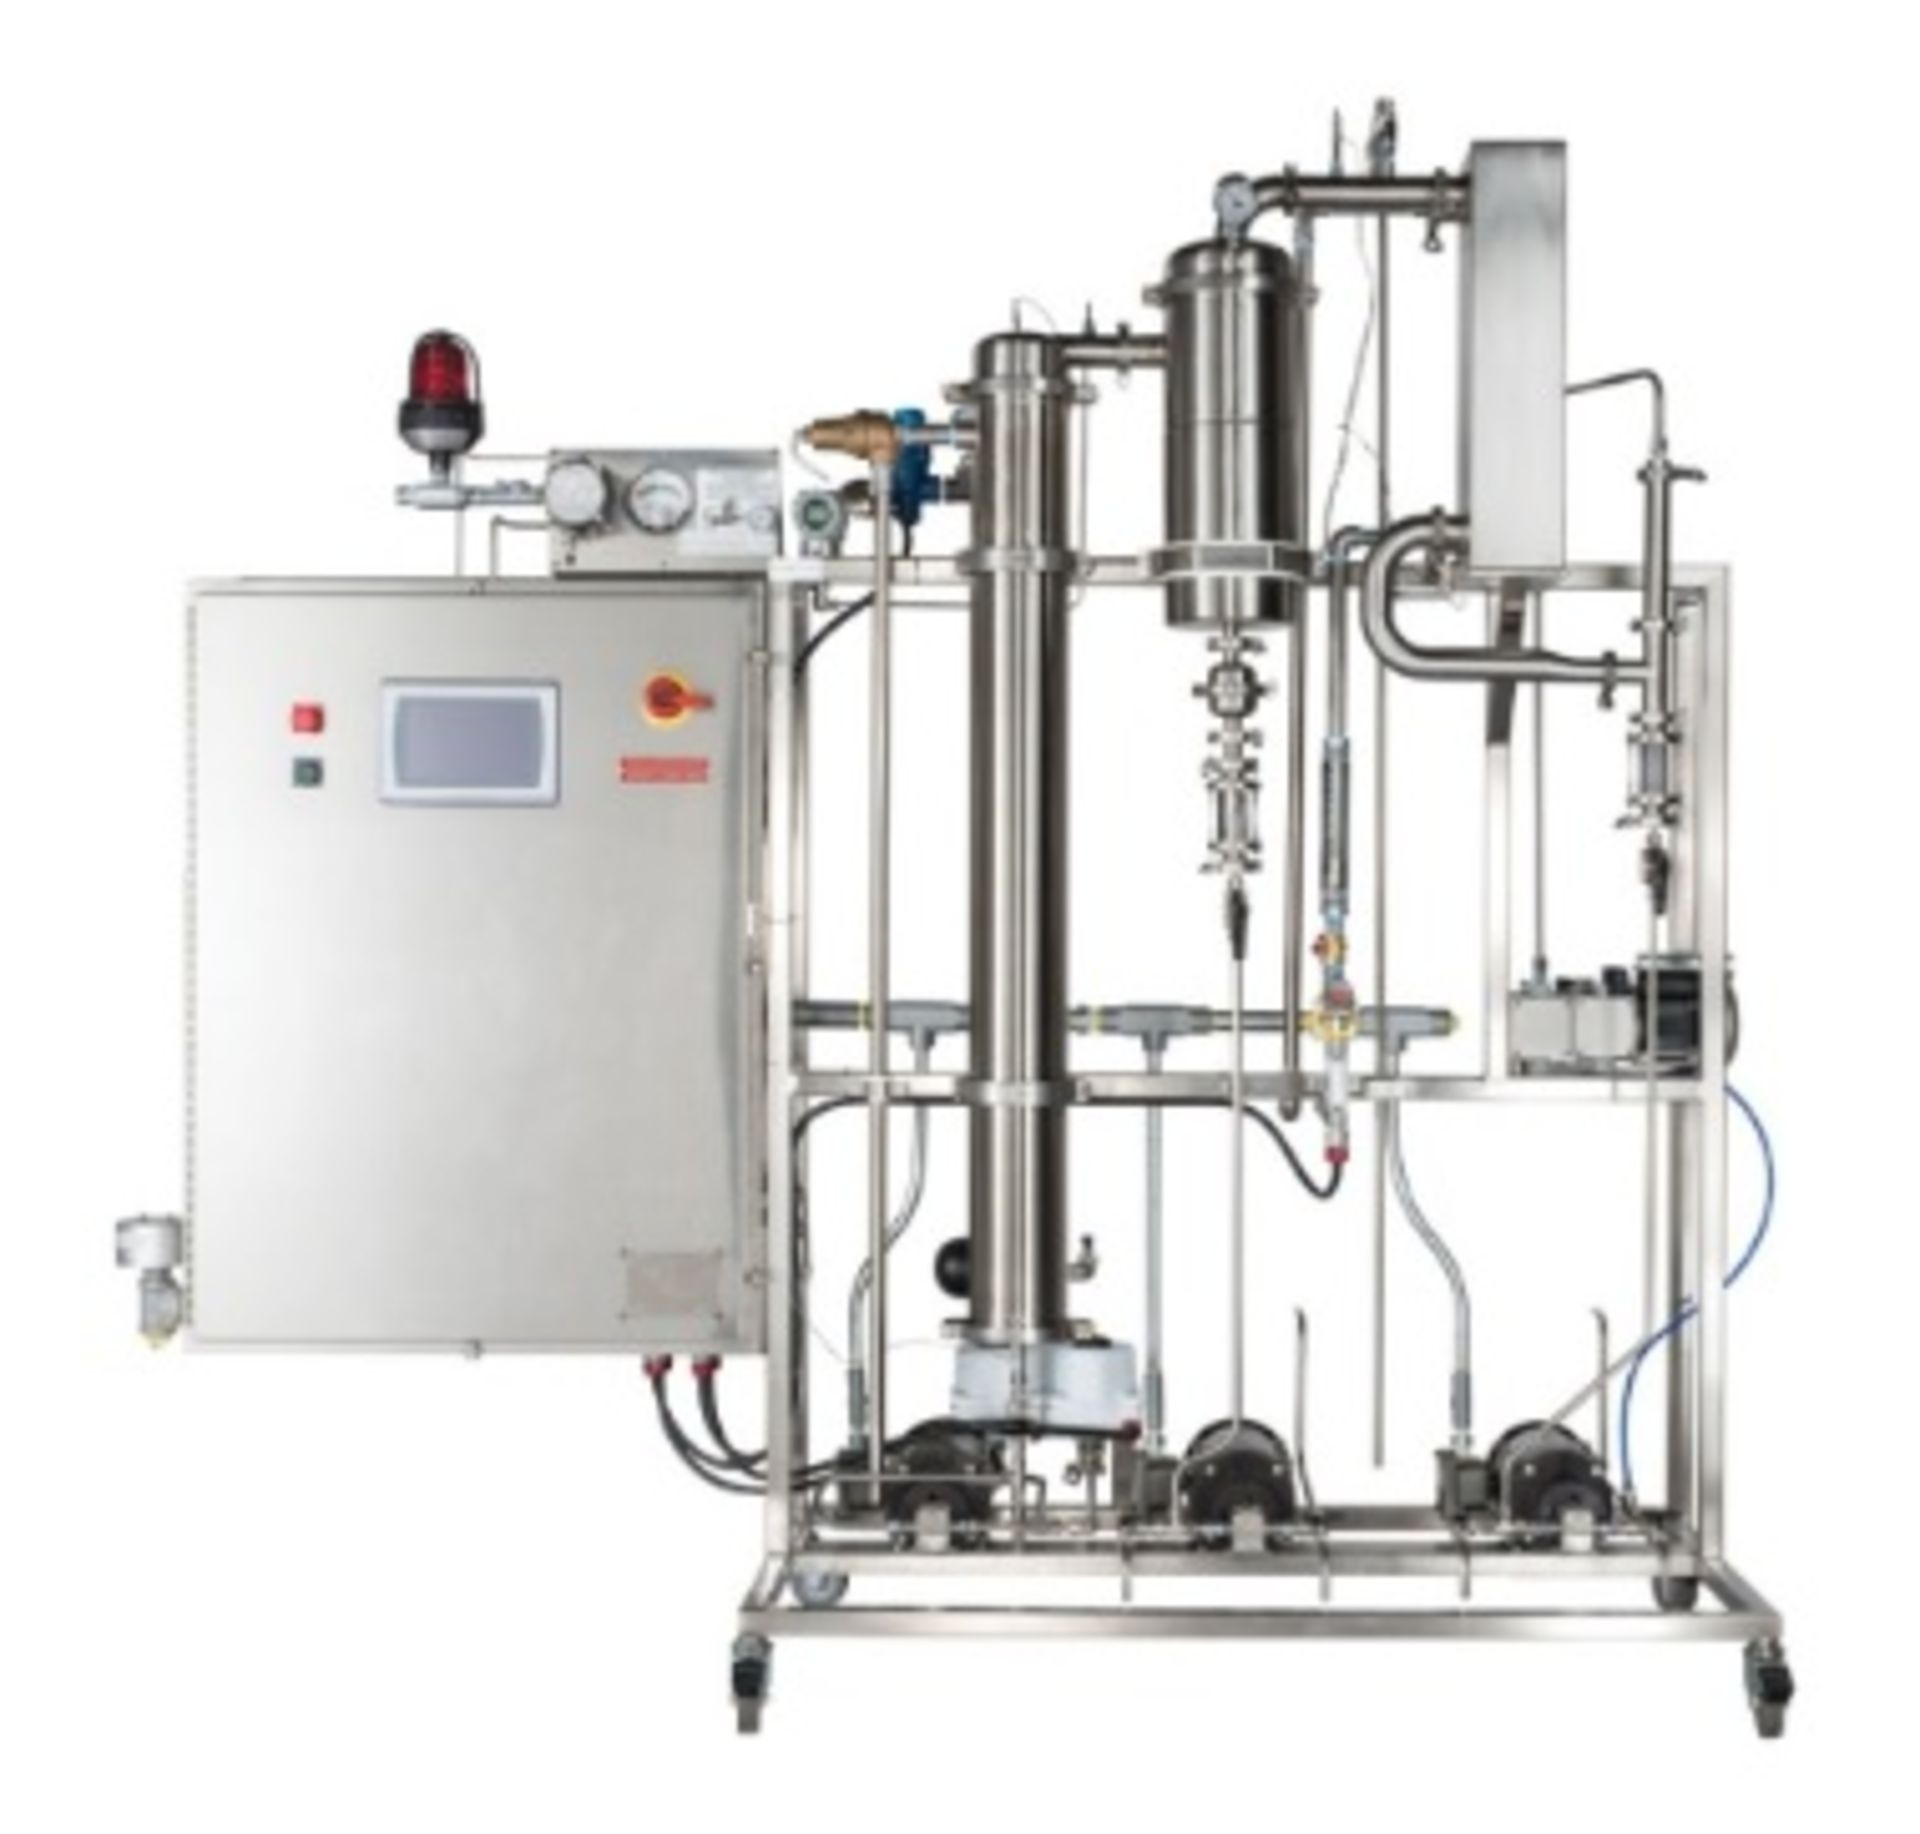 100L SRS Pinnacle Stainless Solvent-Recovery Skid.100L Per Hour Output of Alcohol Recovery - Image 2 of 2